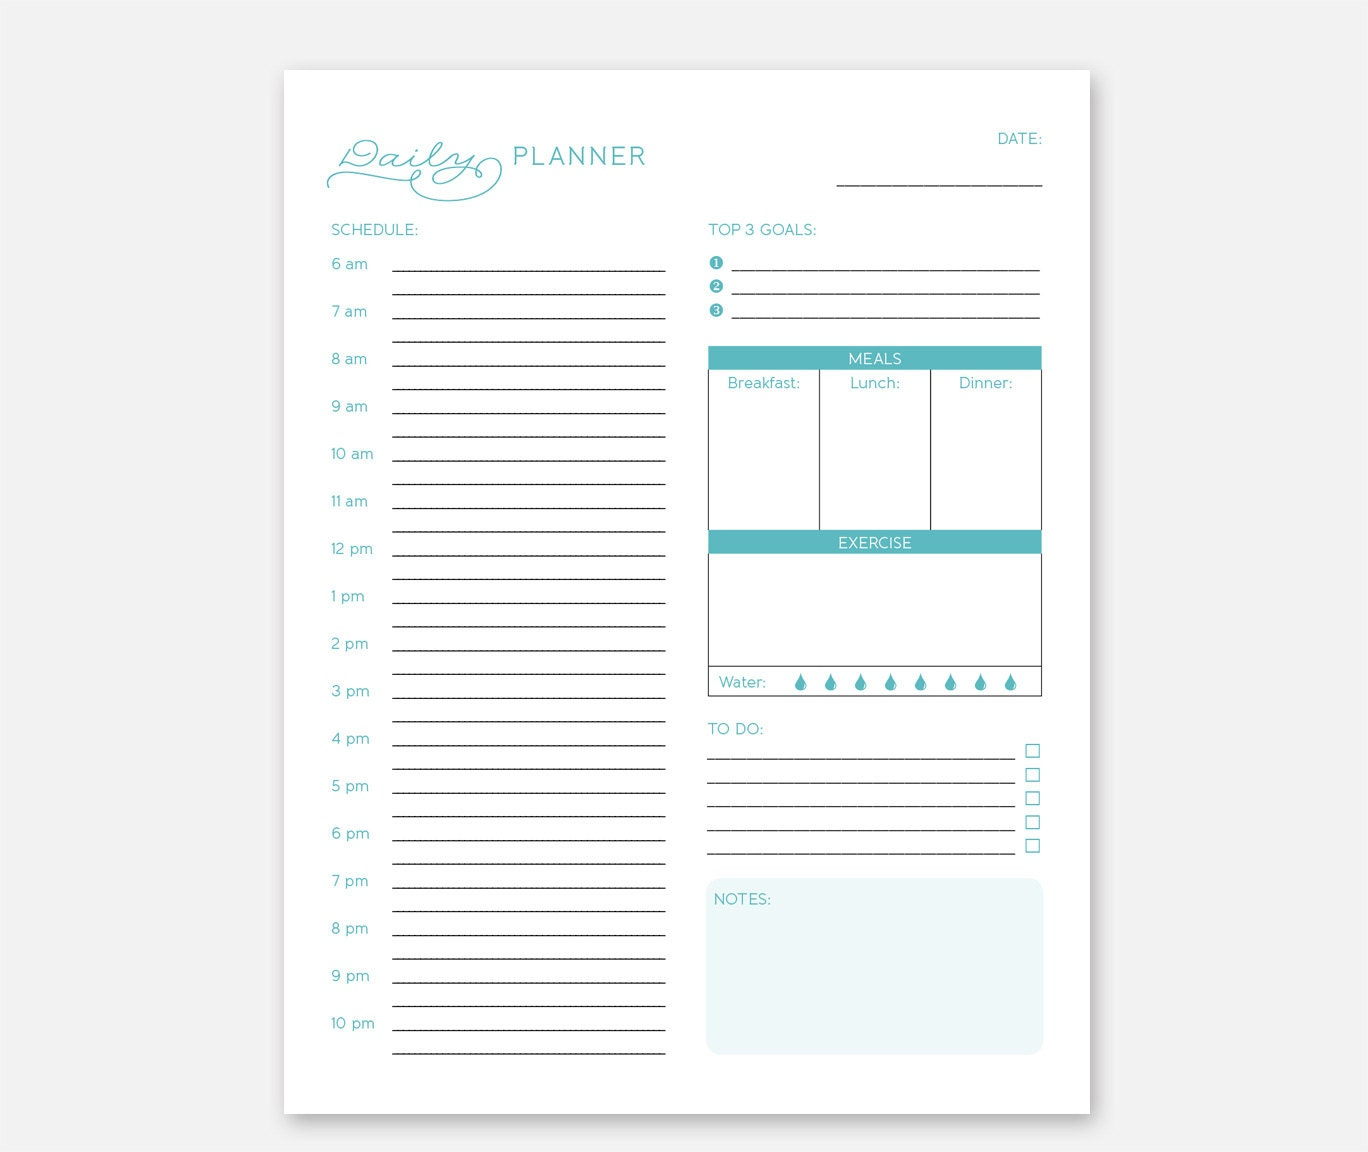 Create Your Own Personal Planner Daily Printable Planner Office Daily Planner Daily To Do